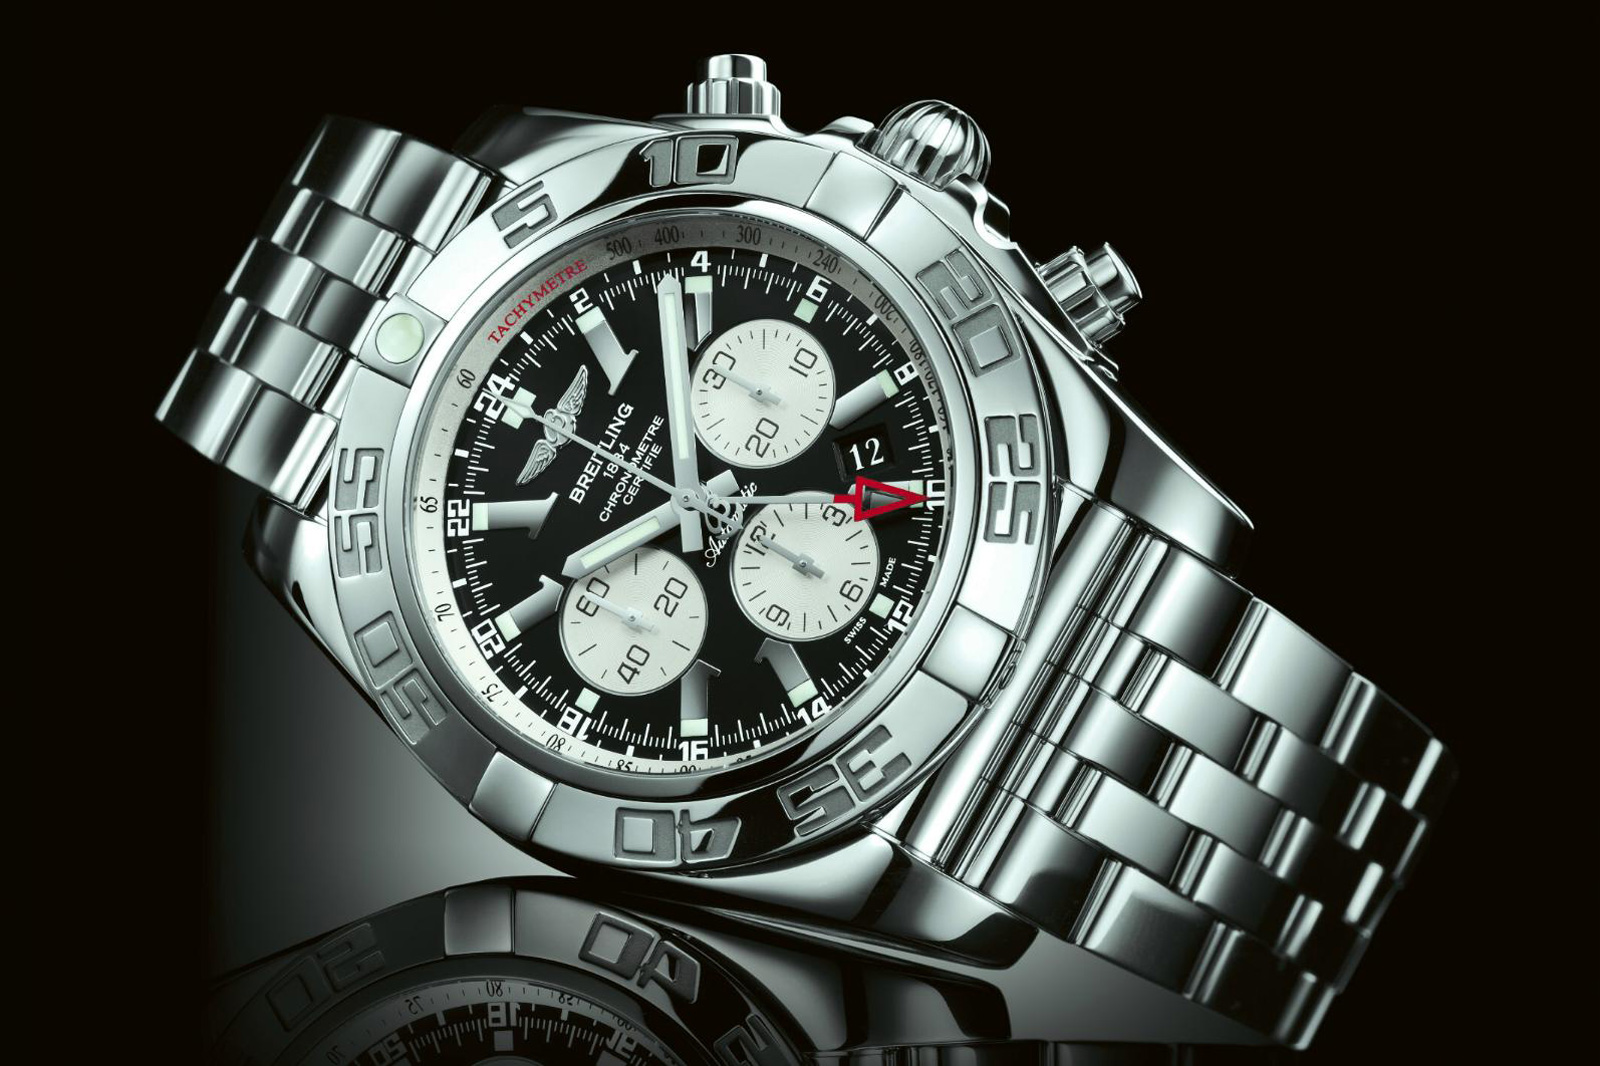 breitling chronomat gmt dual time zone watch extravaganzi. Cars Review. Best American Auto & Cars Review